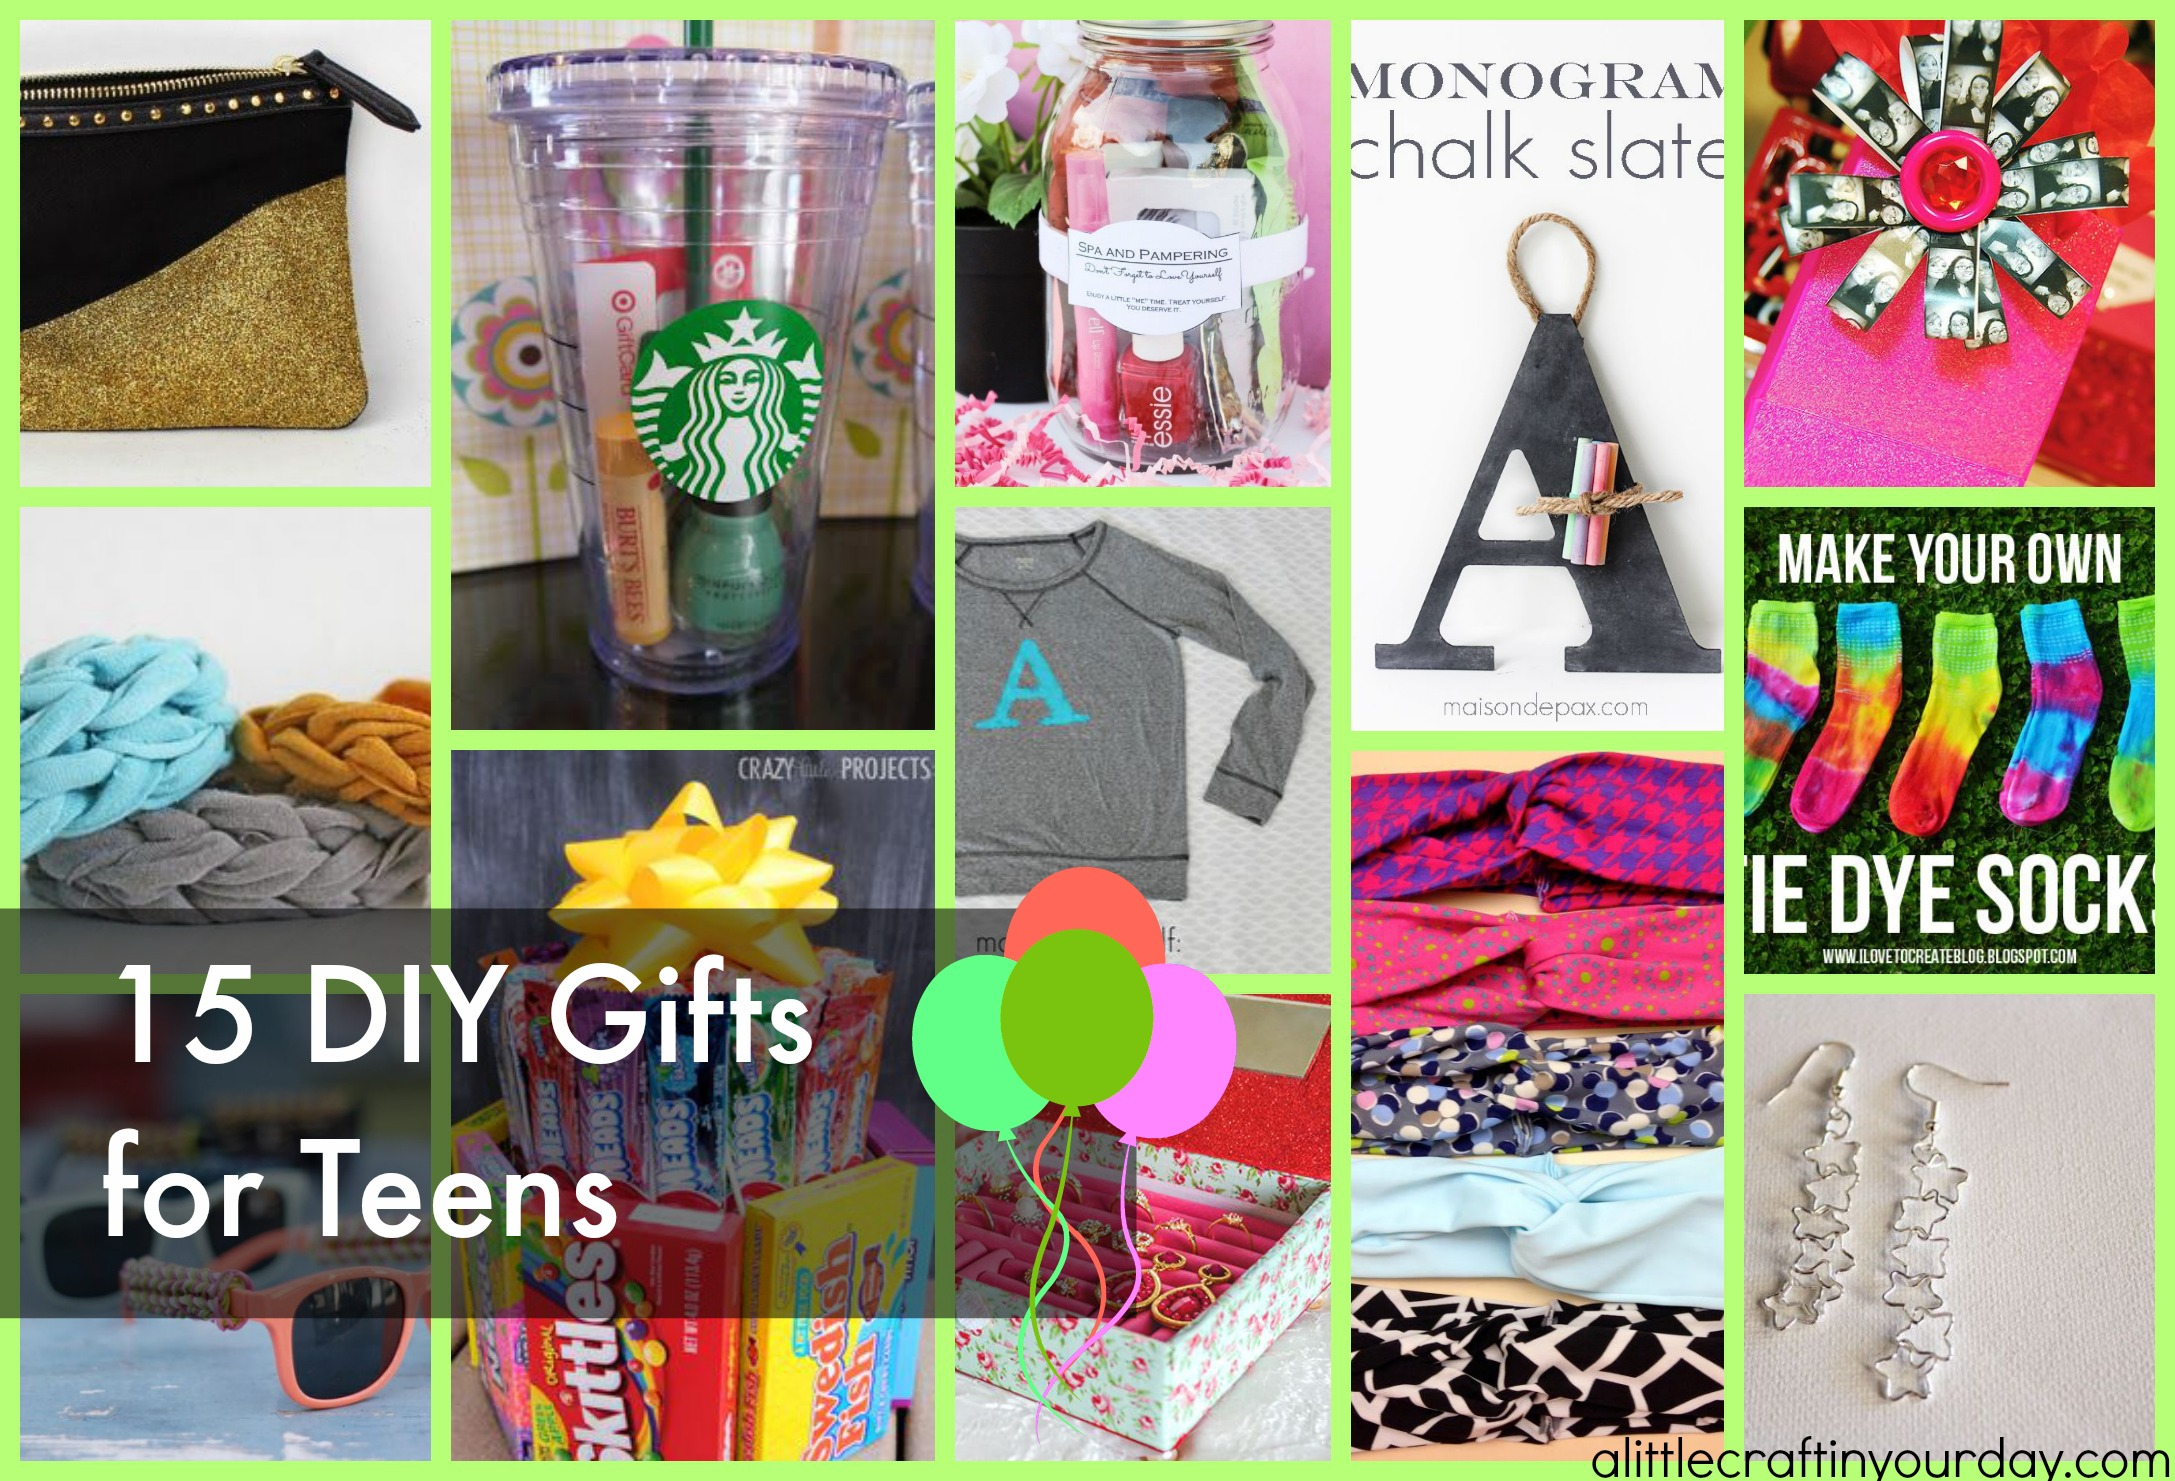 630 diy gifts for teens